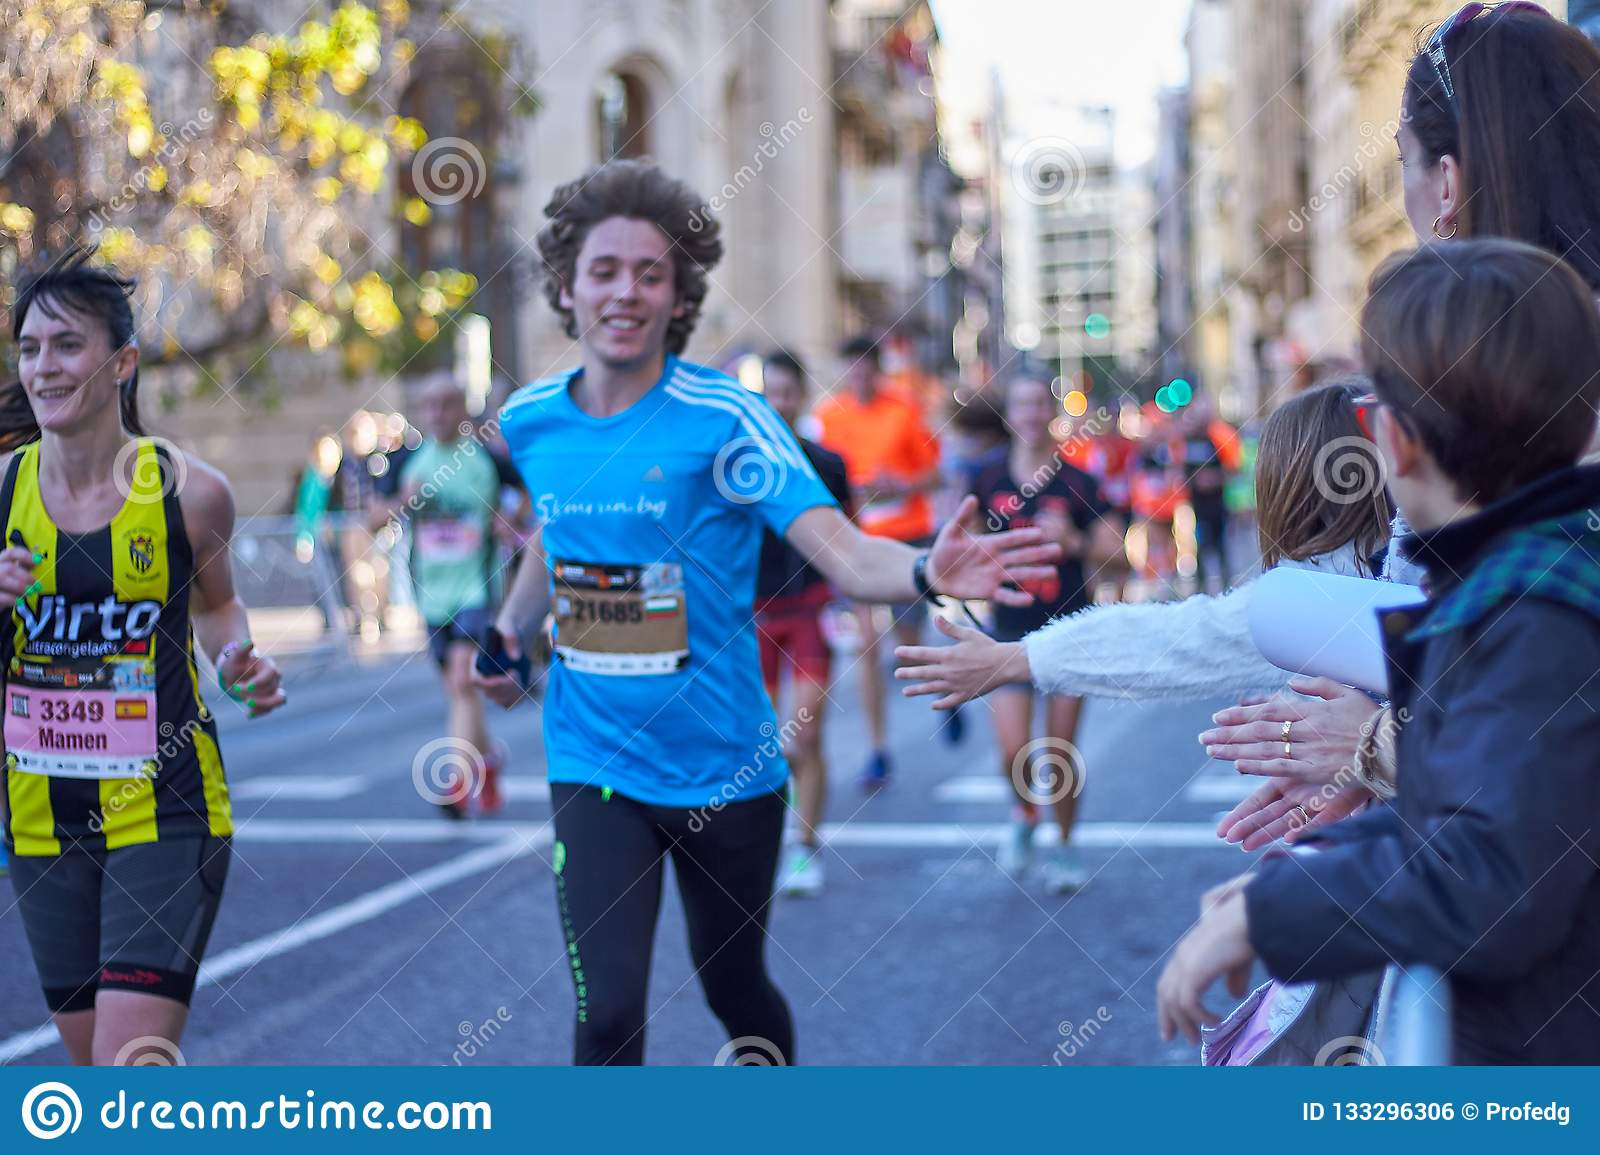 VALENCIA, SPAIN - DECEMBER 2: Runners shake hands with attendees at the XXXVIII Valencia Marathon on December 18, 2018 in Valencia